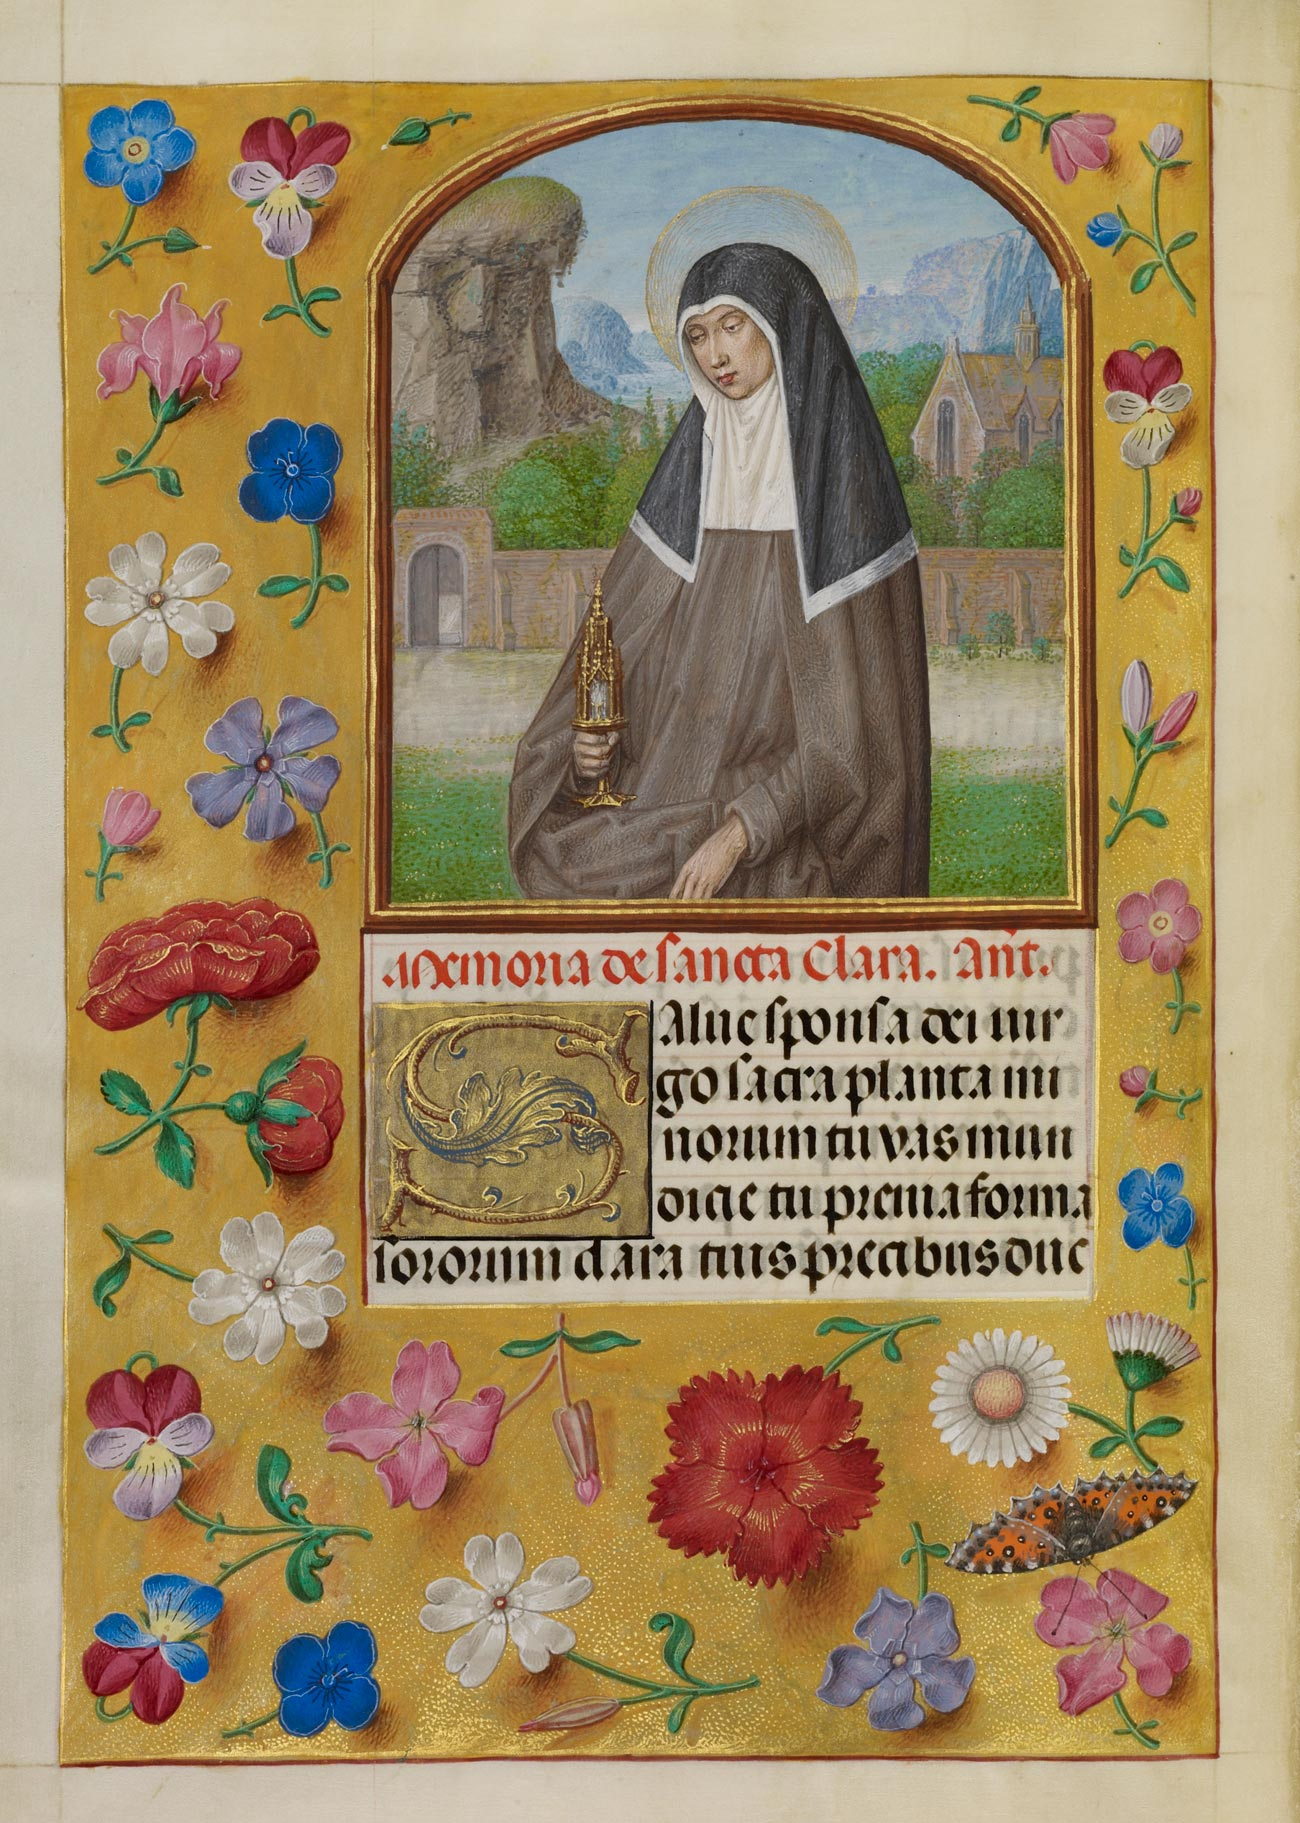 Manuscript page, image of a nun in the top half, some text underneath. The rest of the page is completely filled in with gold leaf decorated with realistic depictions of flowers.